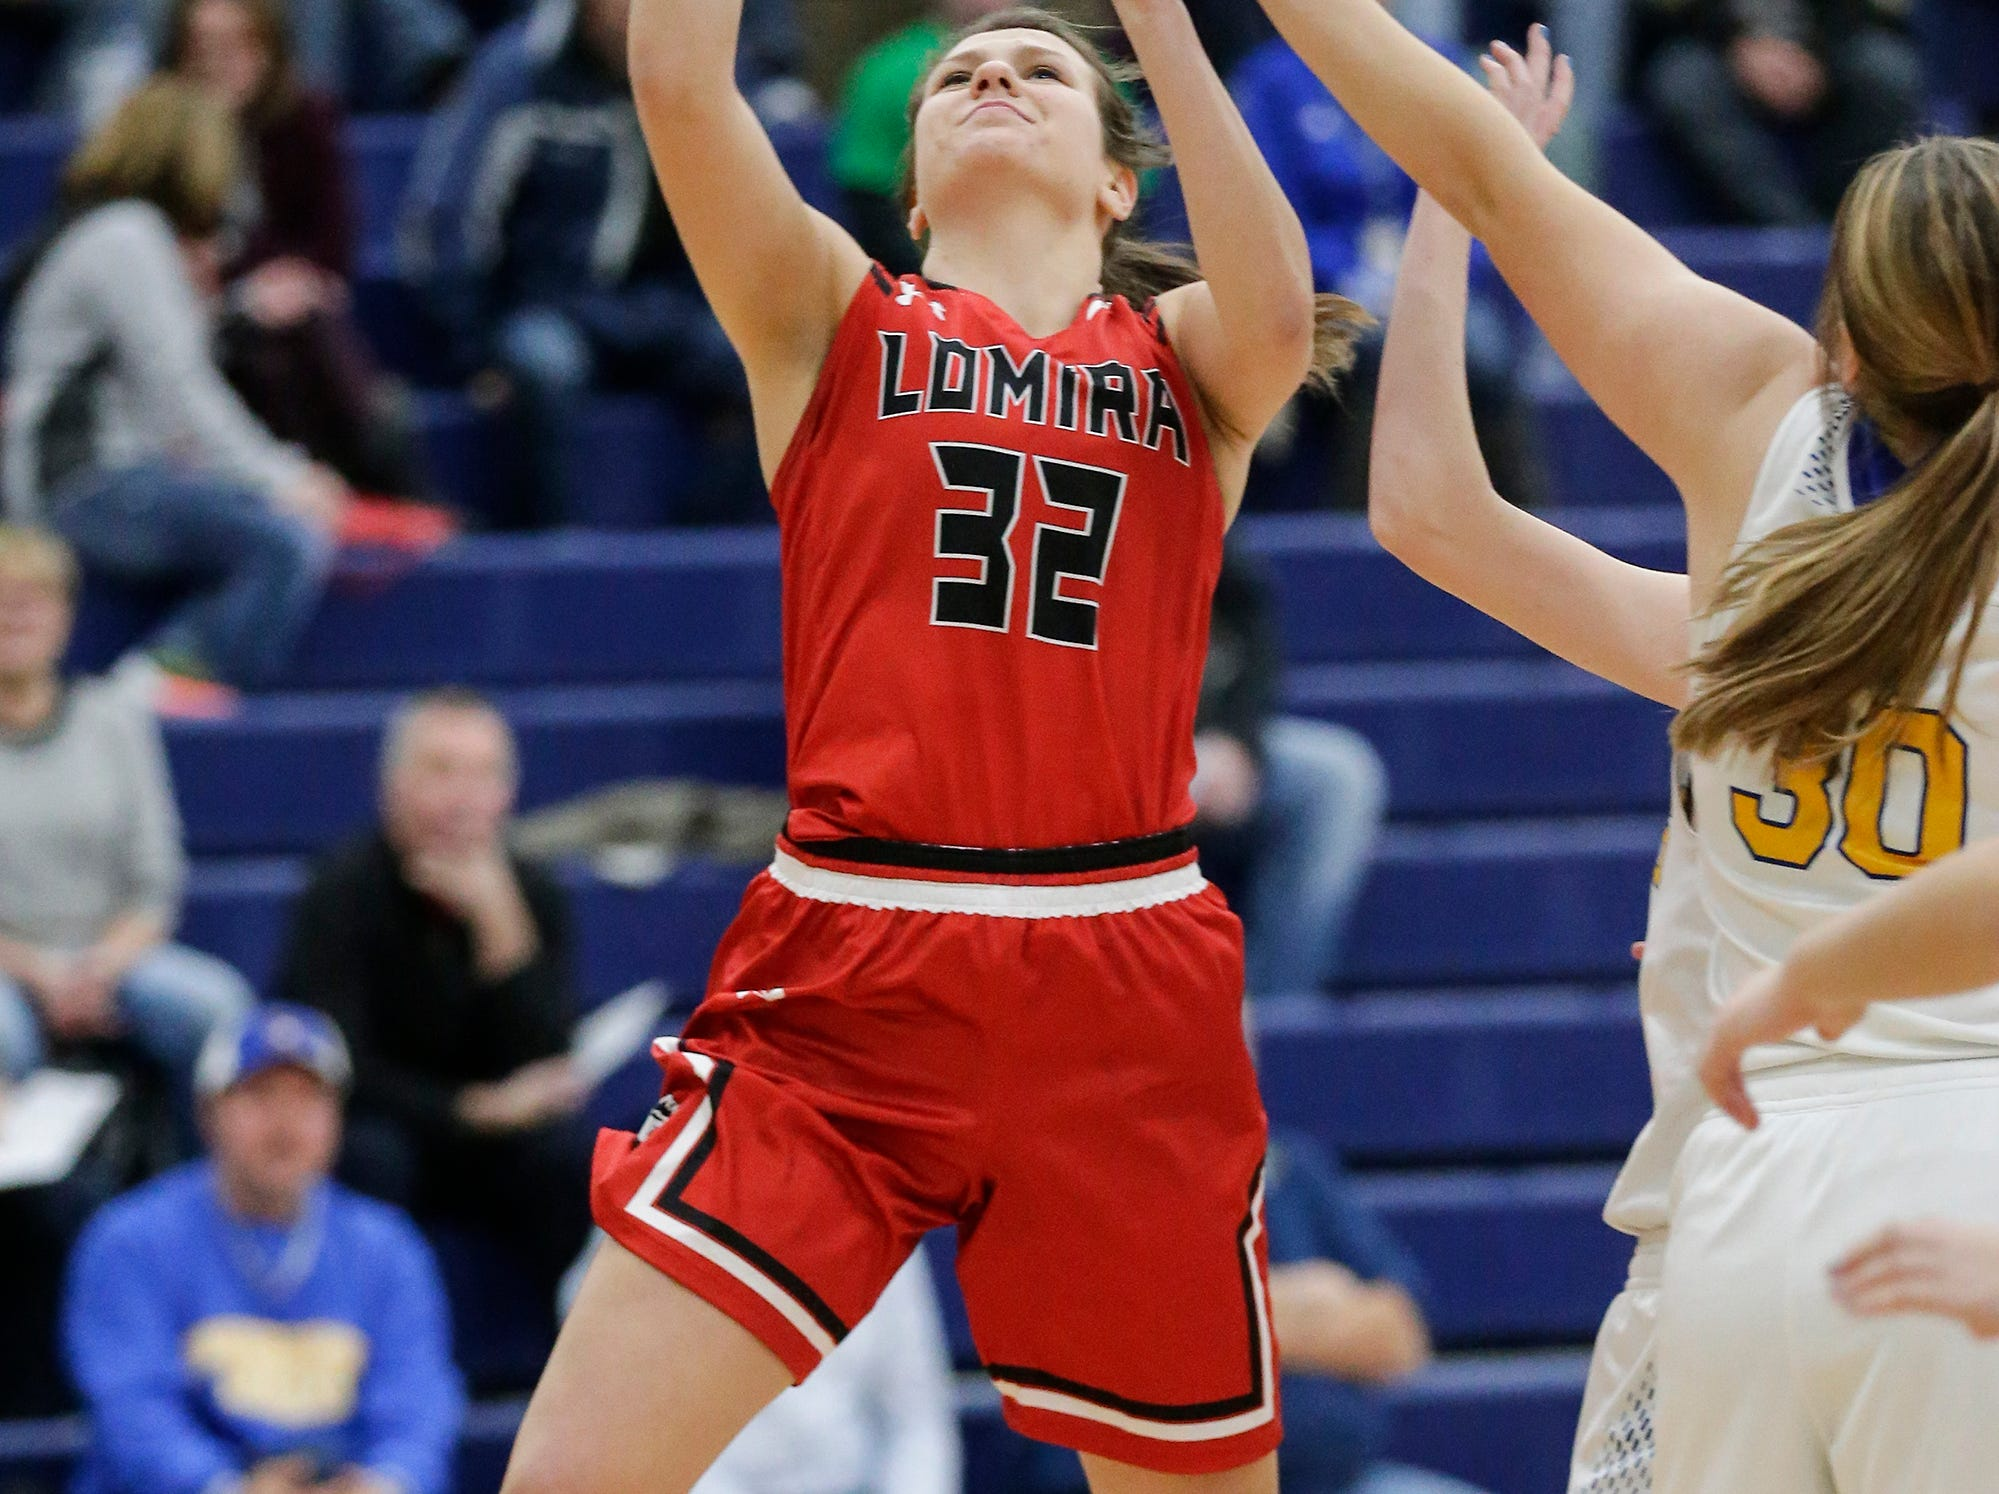 Lomira High School girls basketball's Crystal Geiger goes up for a basket against Campbellsport High School during their game Friday, December 28, 2018 in Campbellsport. Doug Raflik/USA TODAY NETWORK-Wisconsin